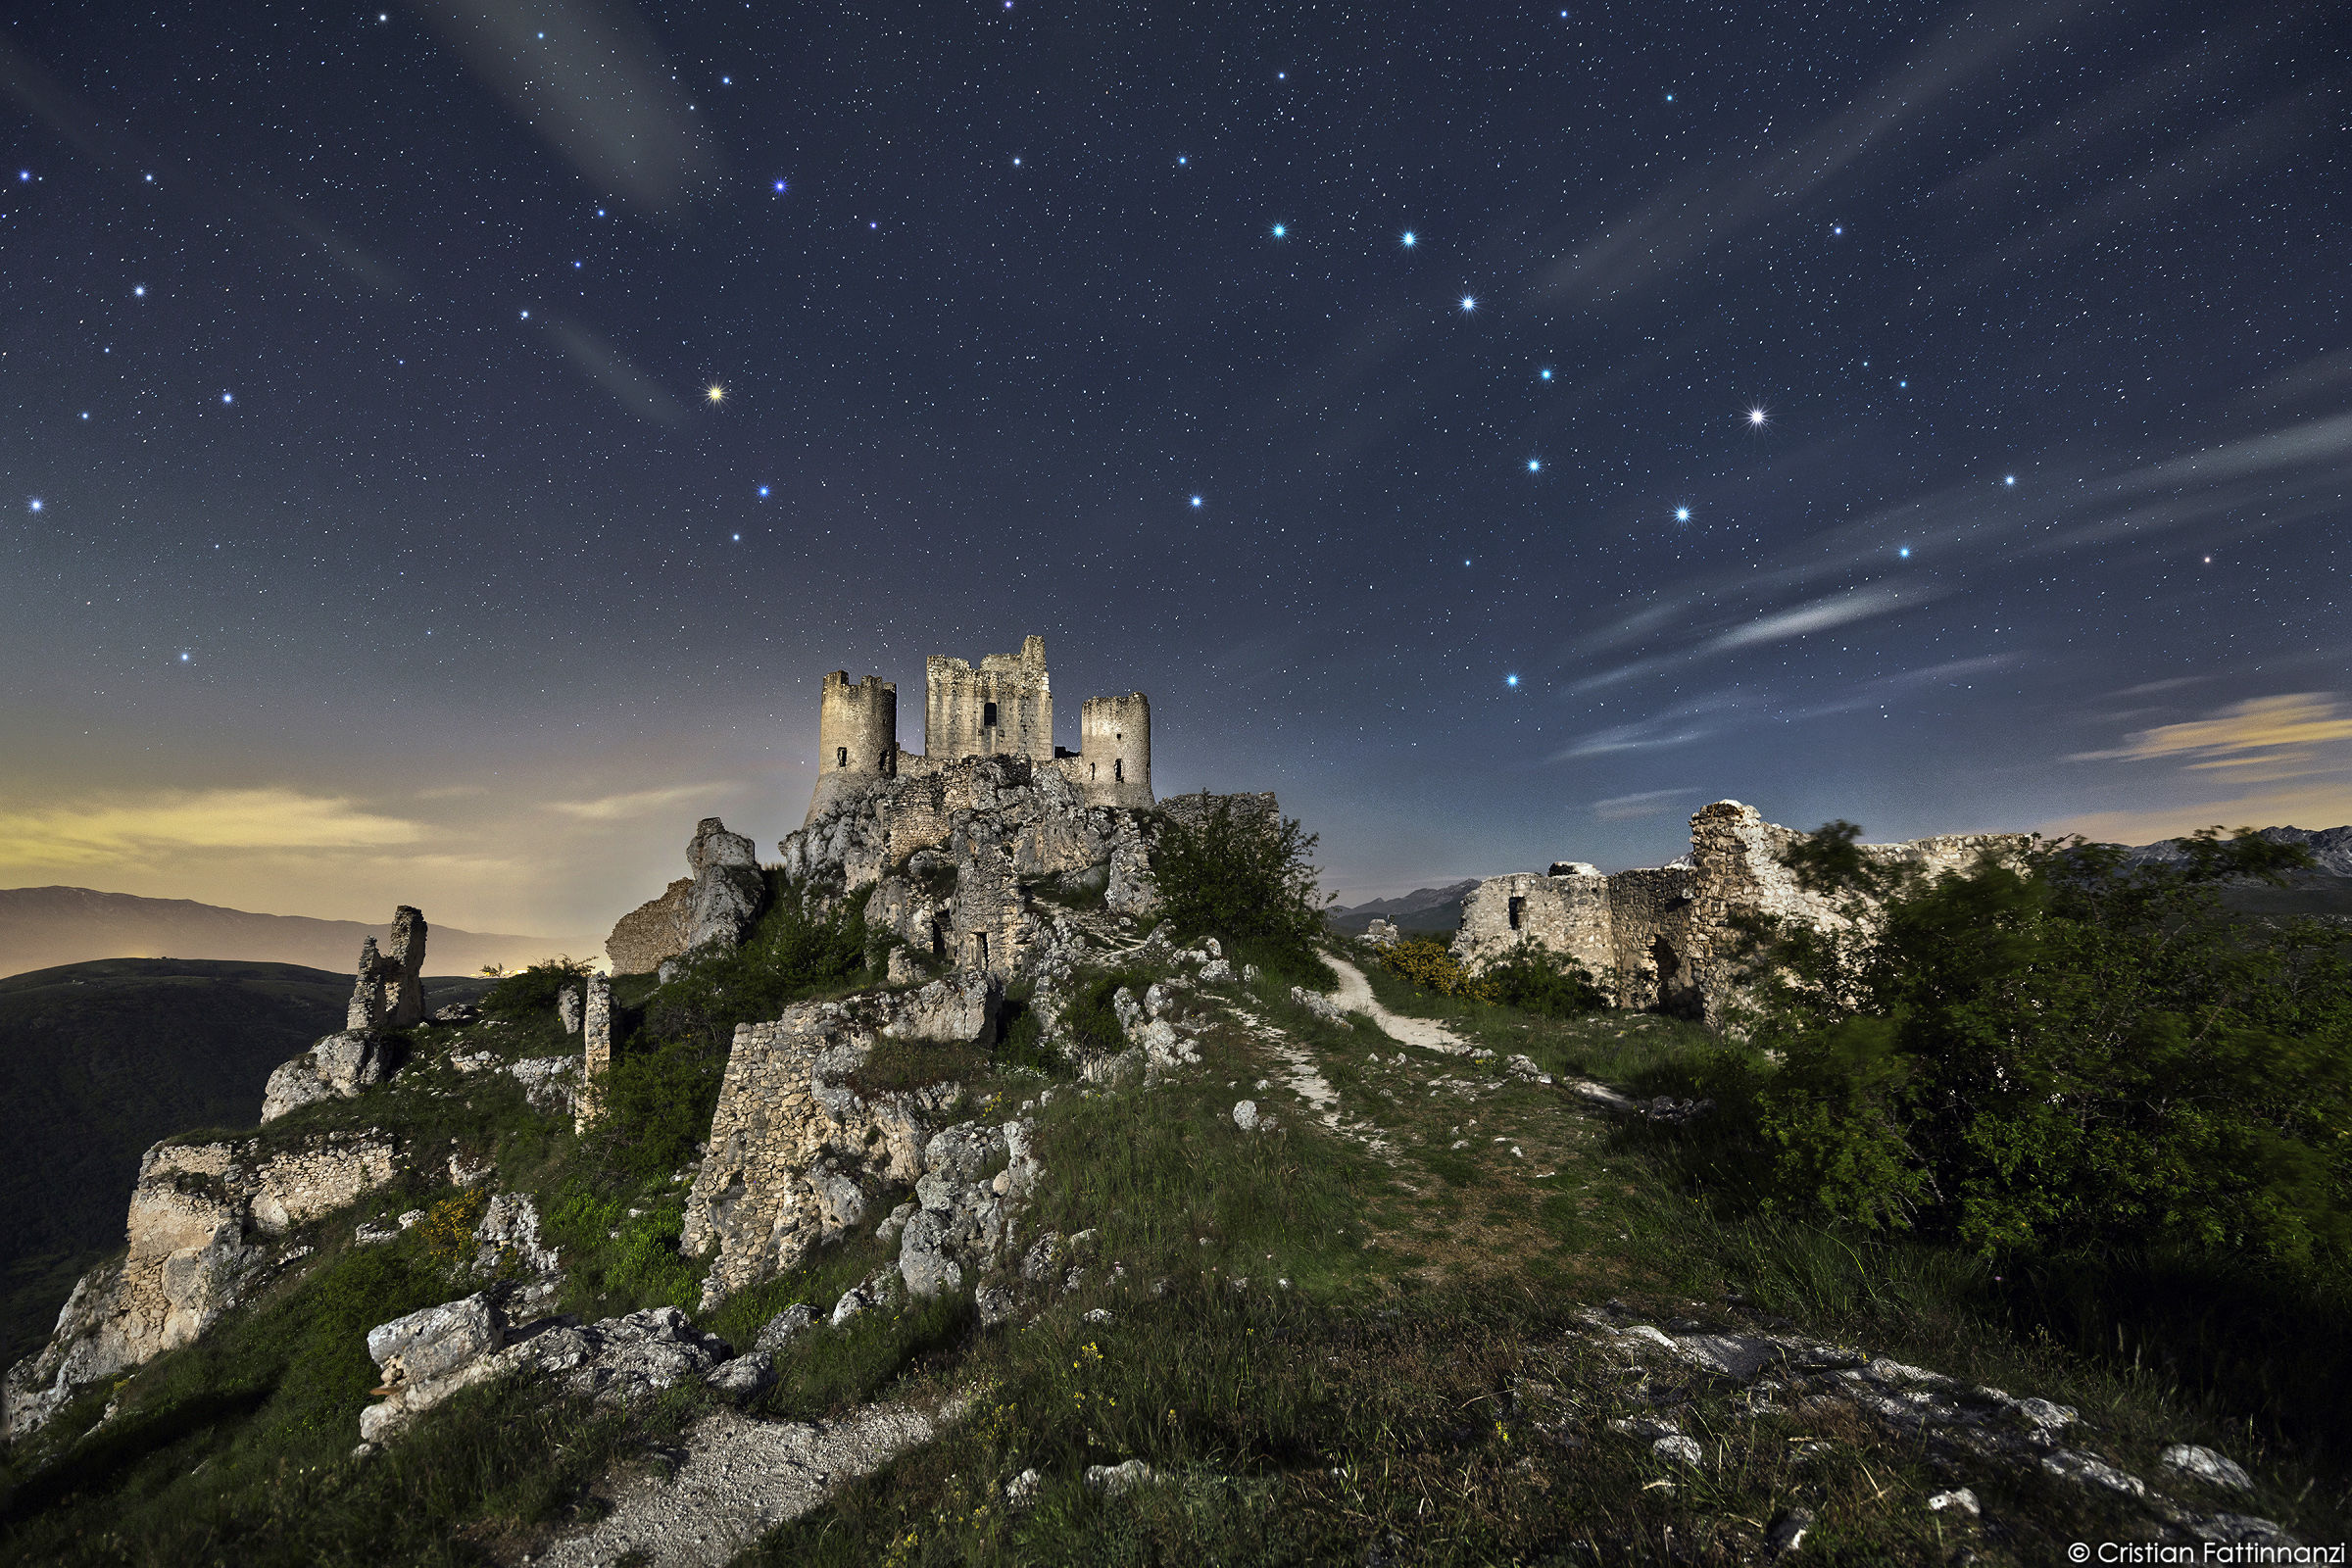 The Big Dipper arrives at the Castle...